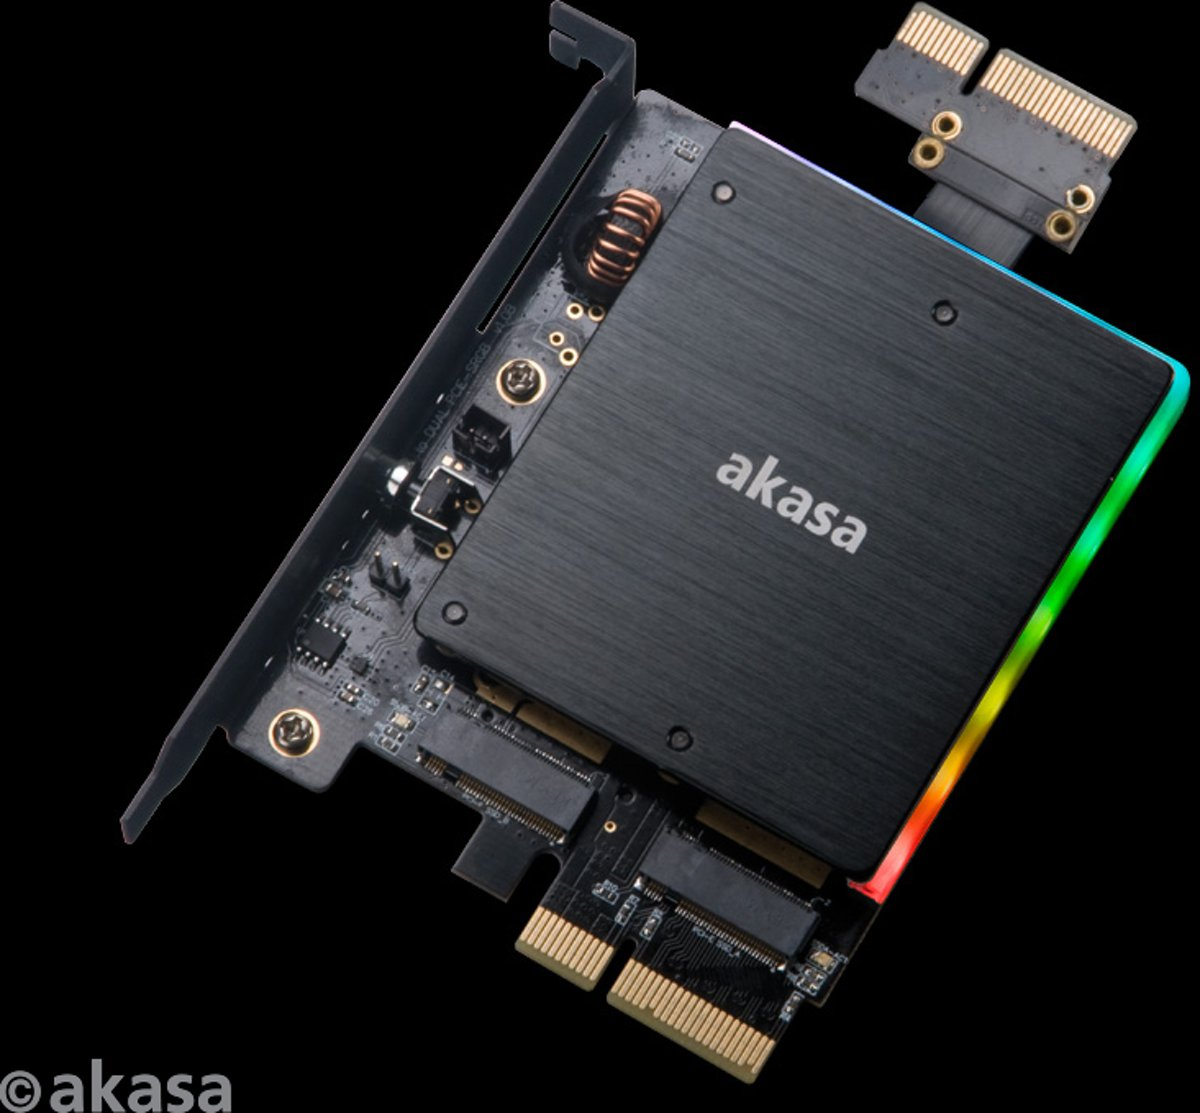 Dual M.2 PCIe SSD adapter with RGB LED light and heatsink